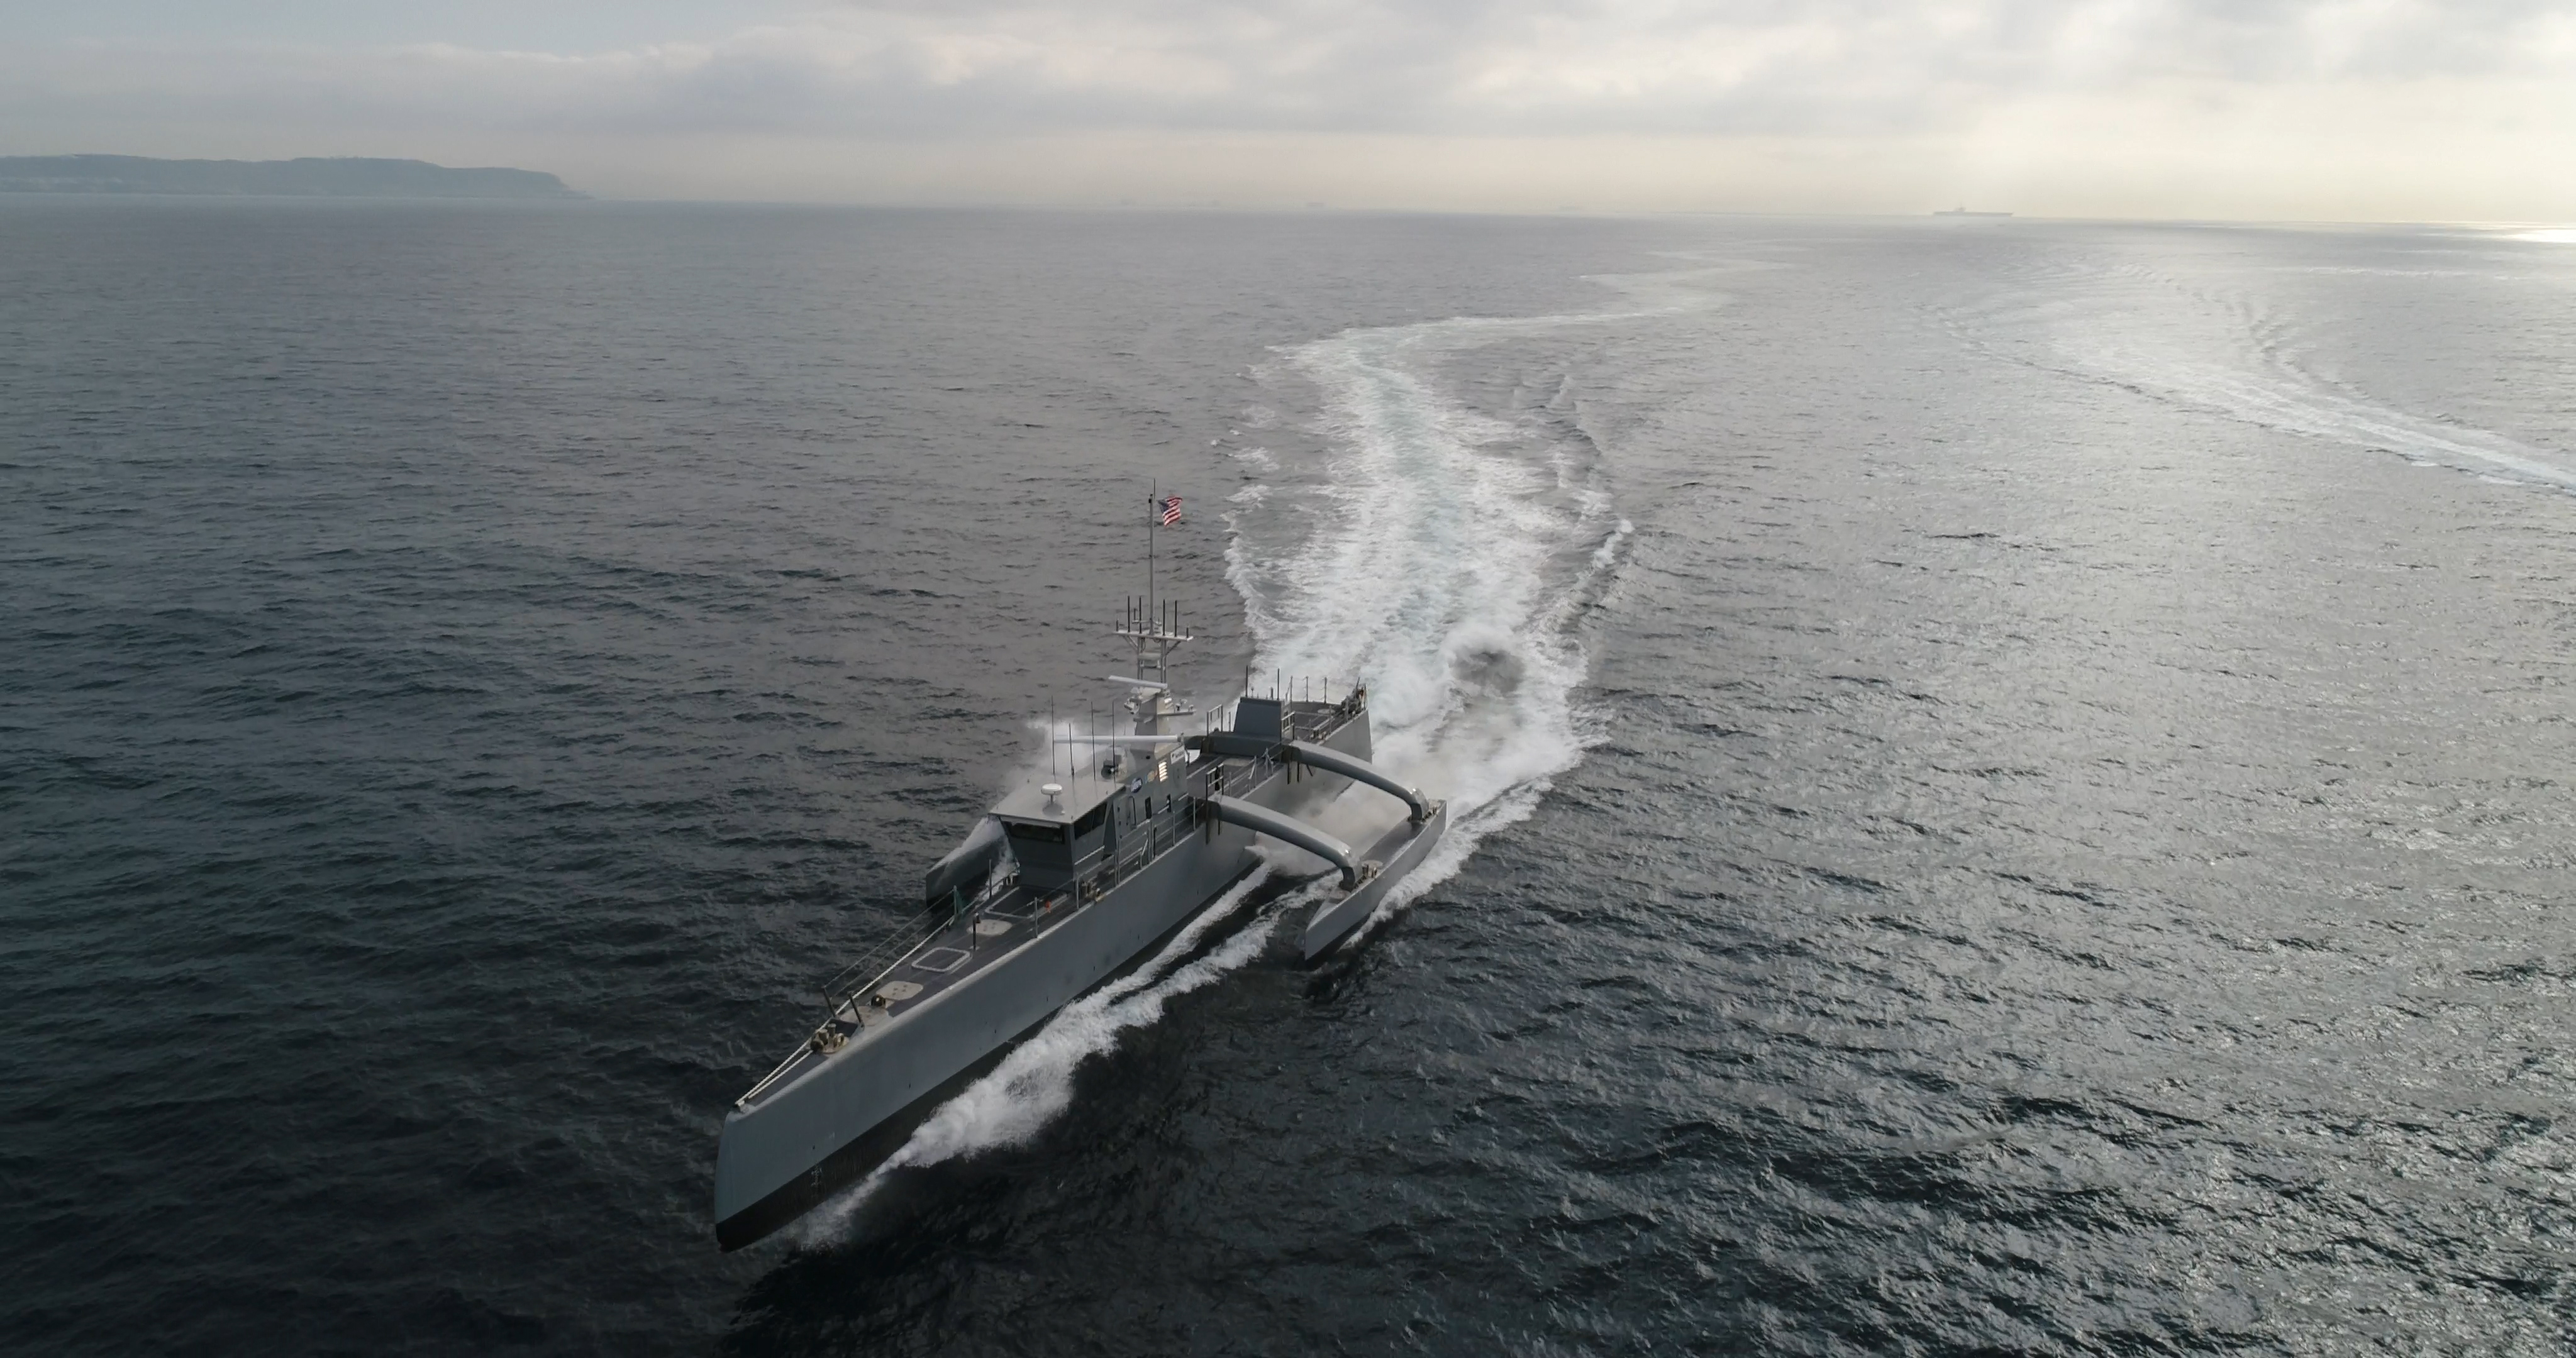 The DARPA-developed Sea Hunter is among the Navy's most prominent and promising autonomous systems. (U.S. Defense Advanced Research Projects Agency)